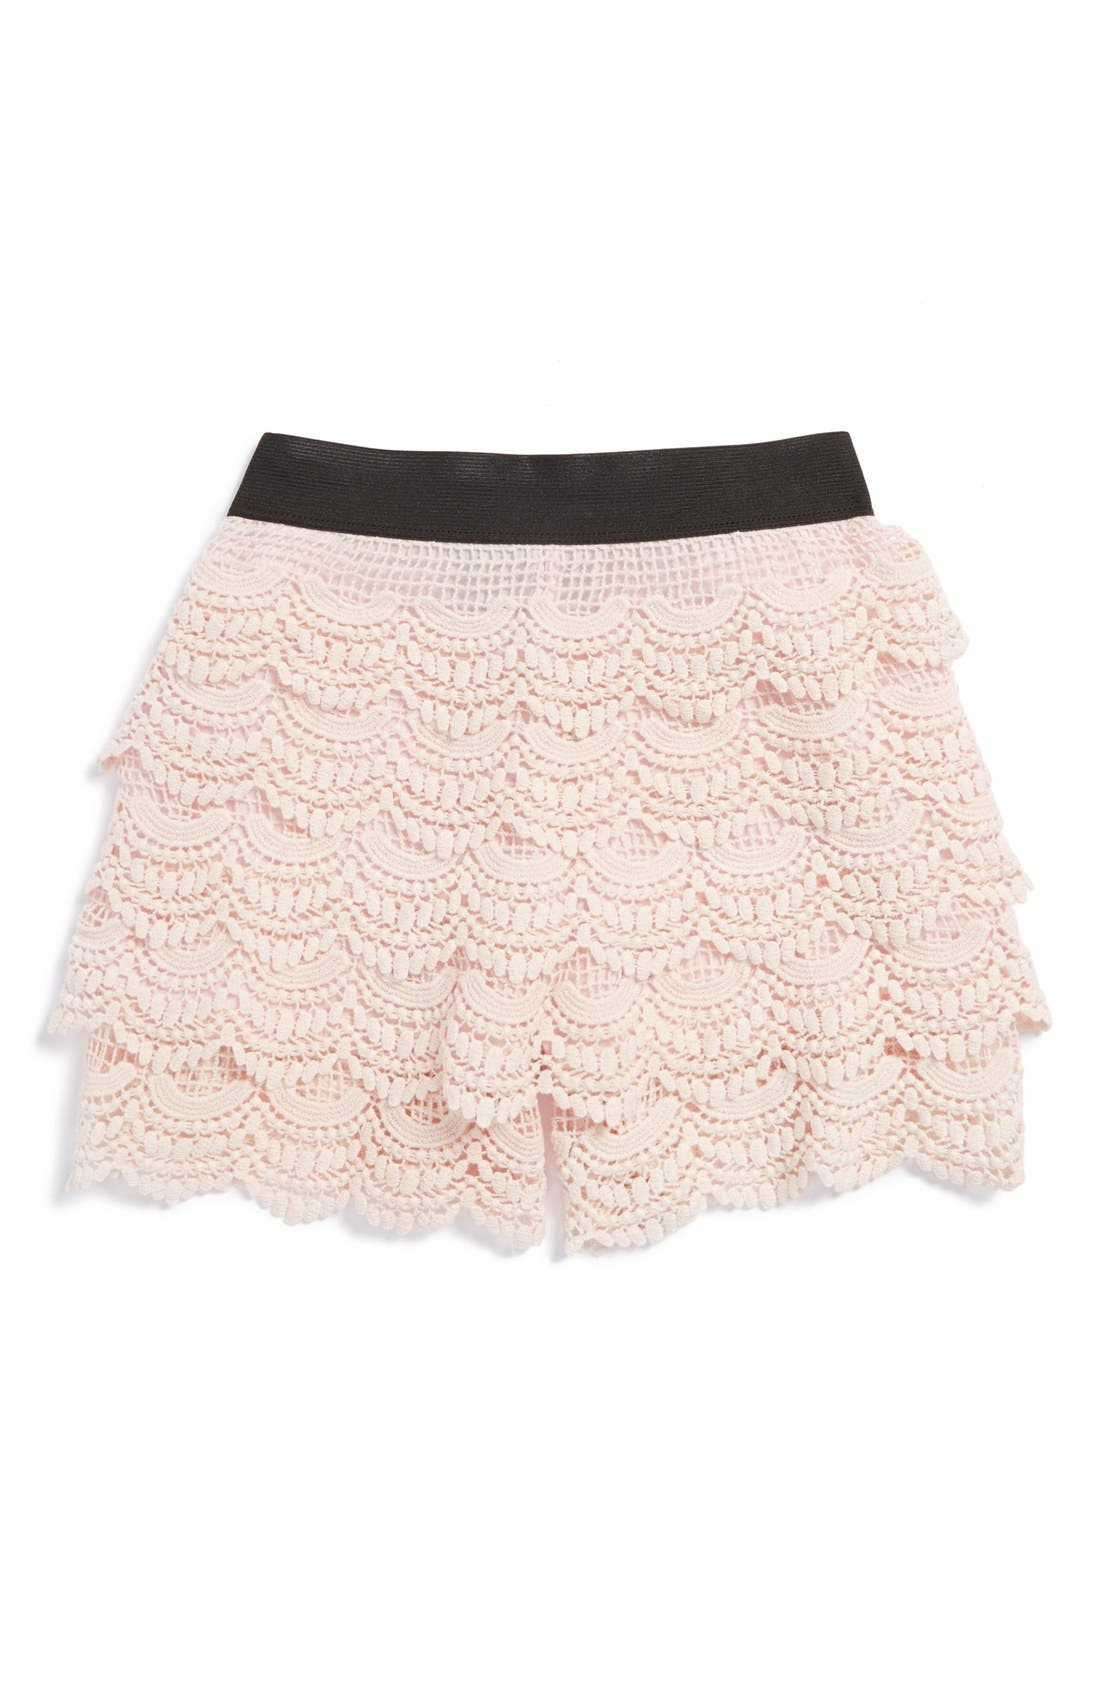 Main Image - Un Deux Trois Lacy Crochet Shorts (Big Girls)